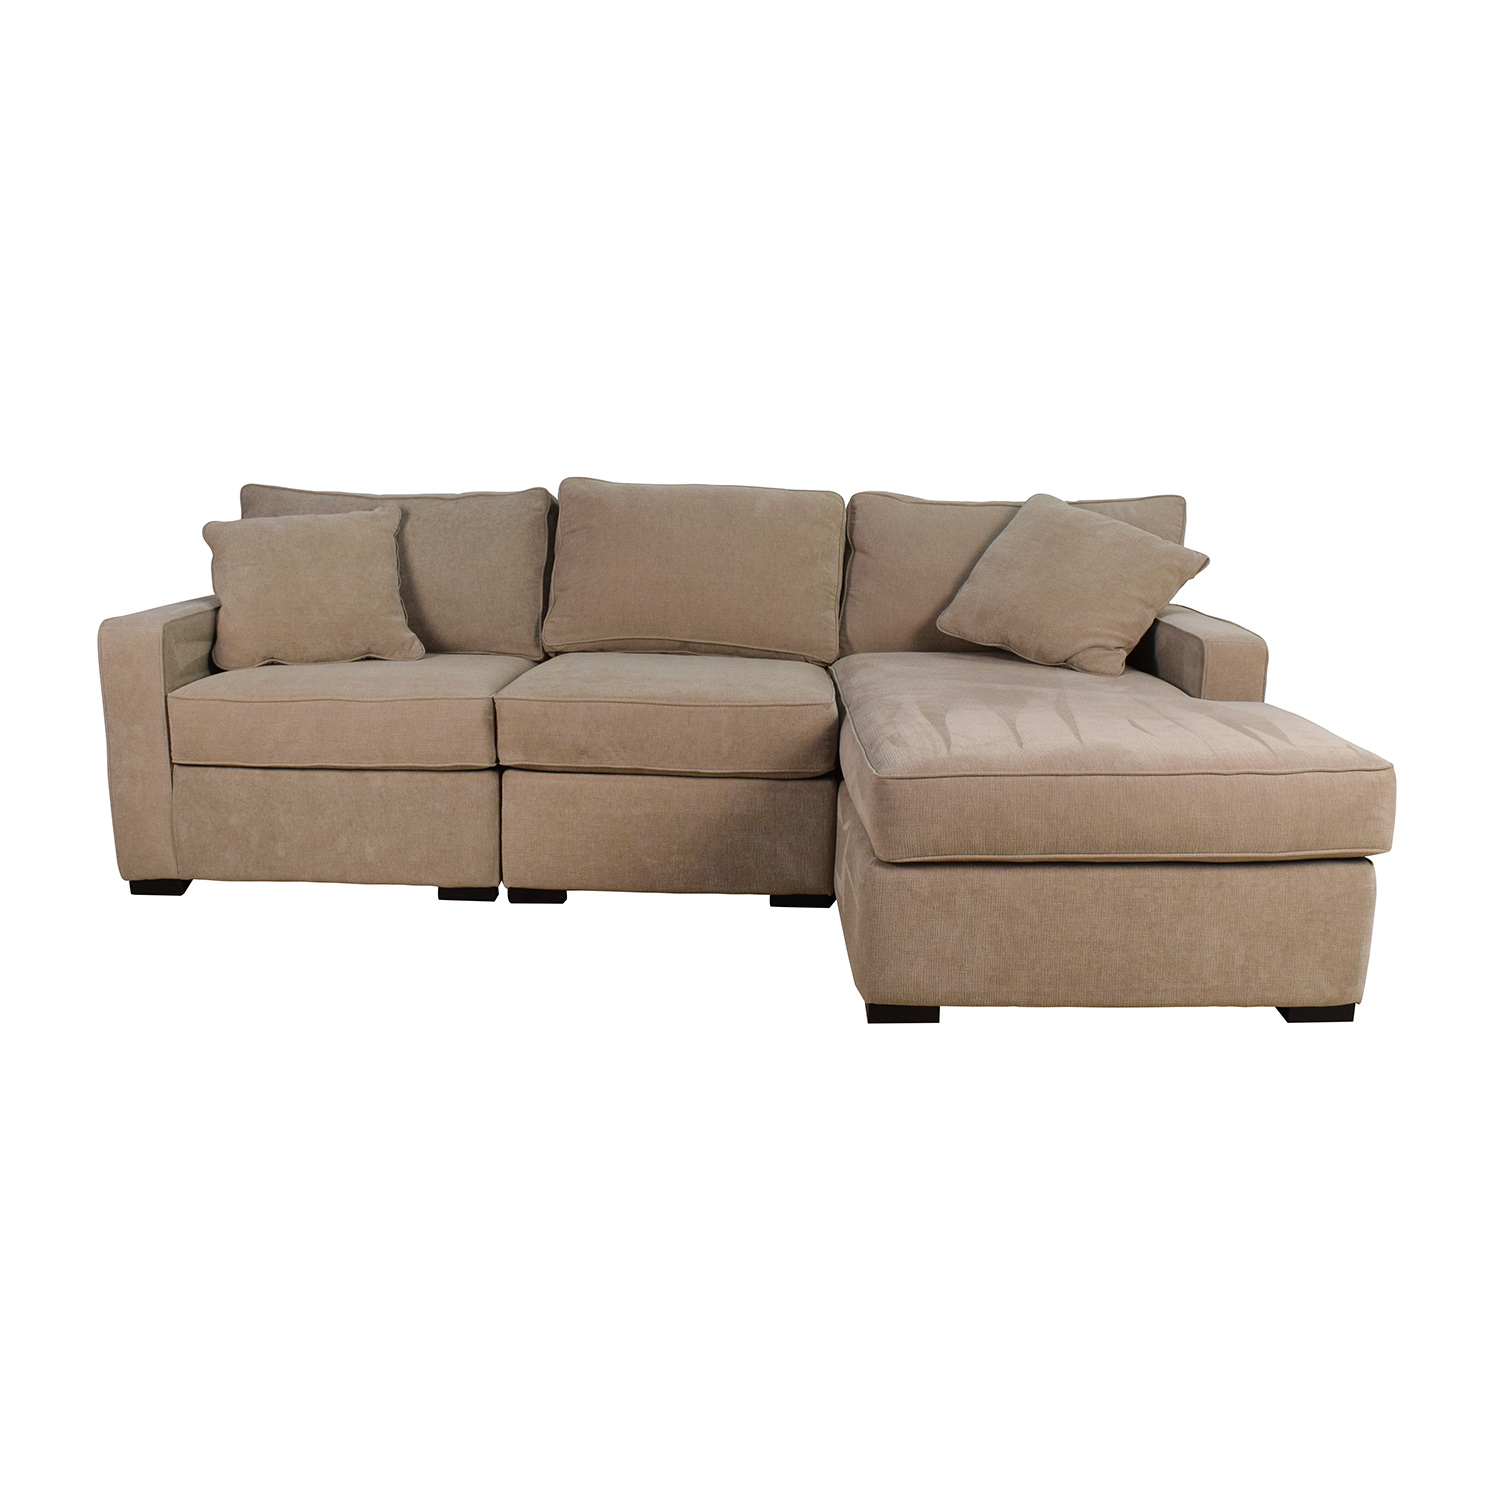 82% OFF White Leather Sectional Couch Sofas